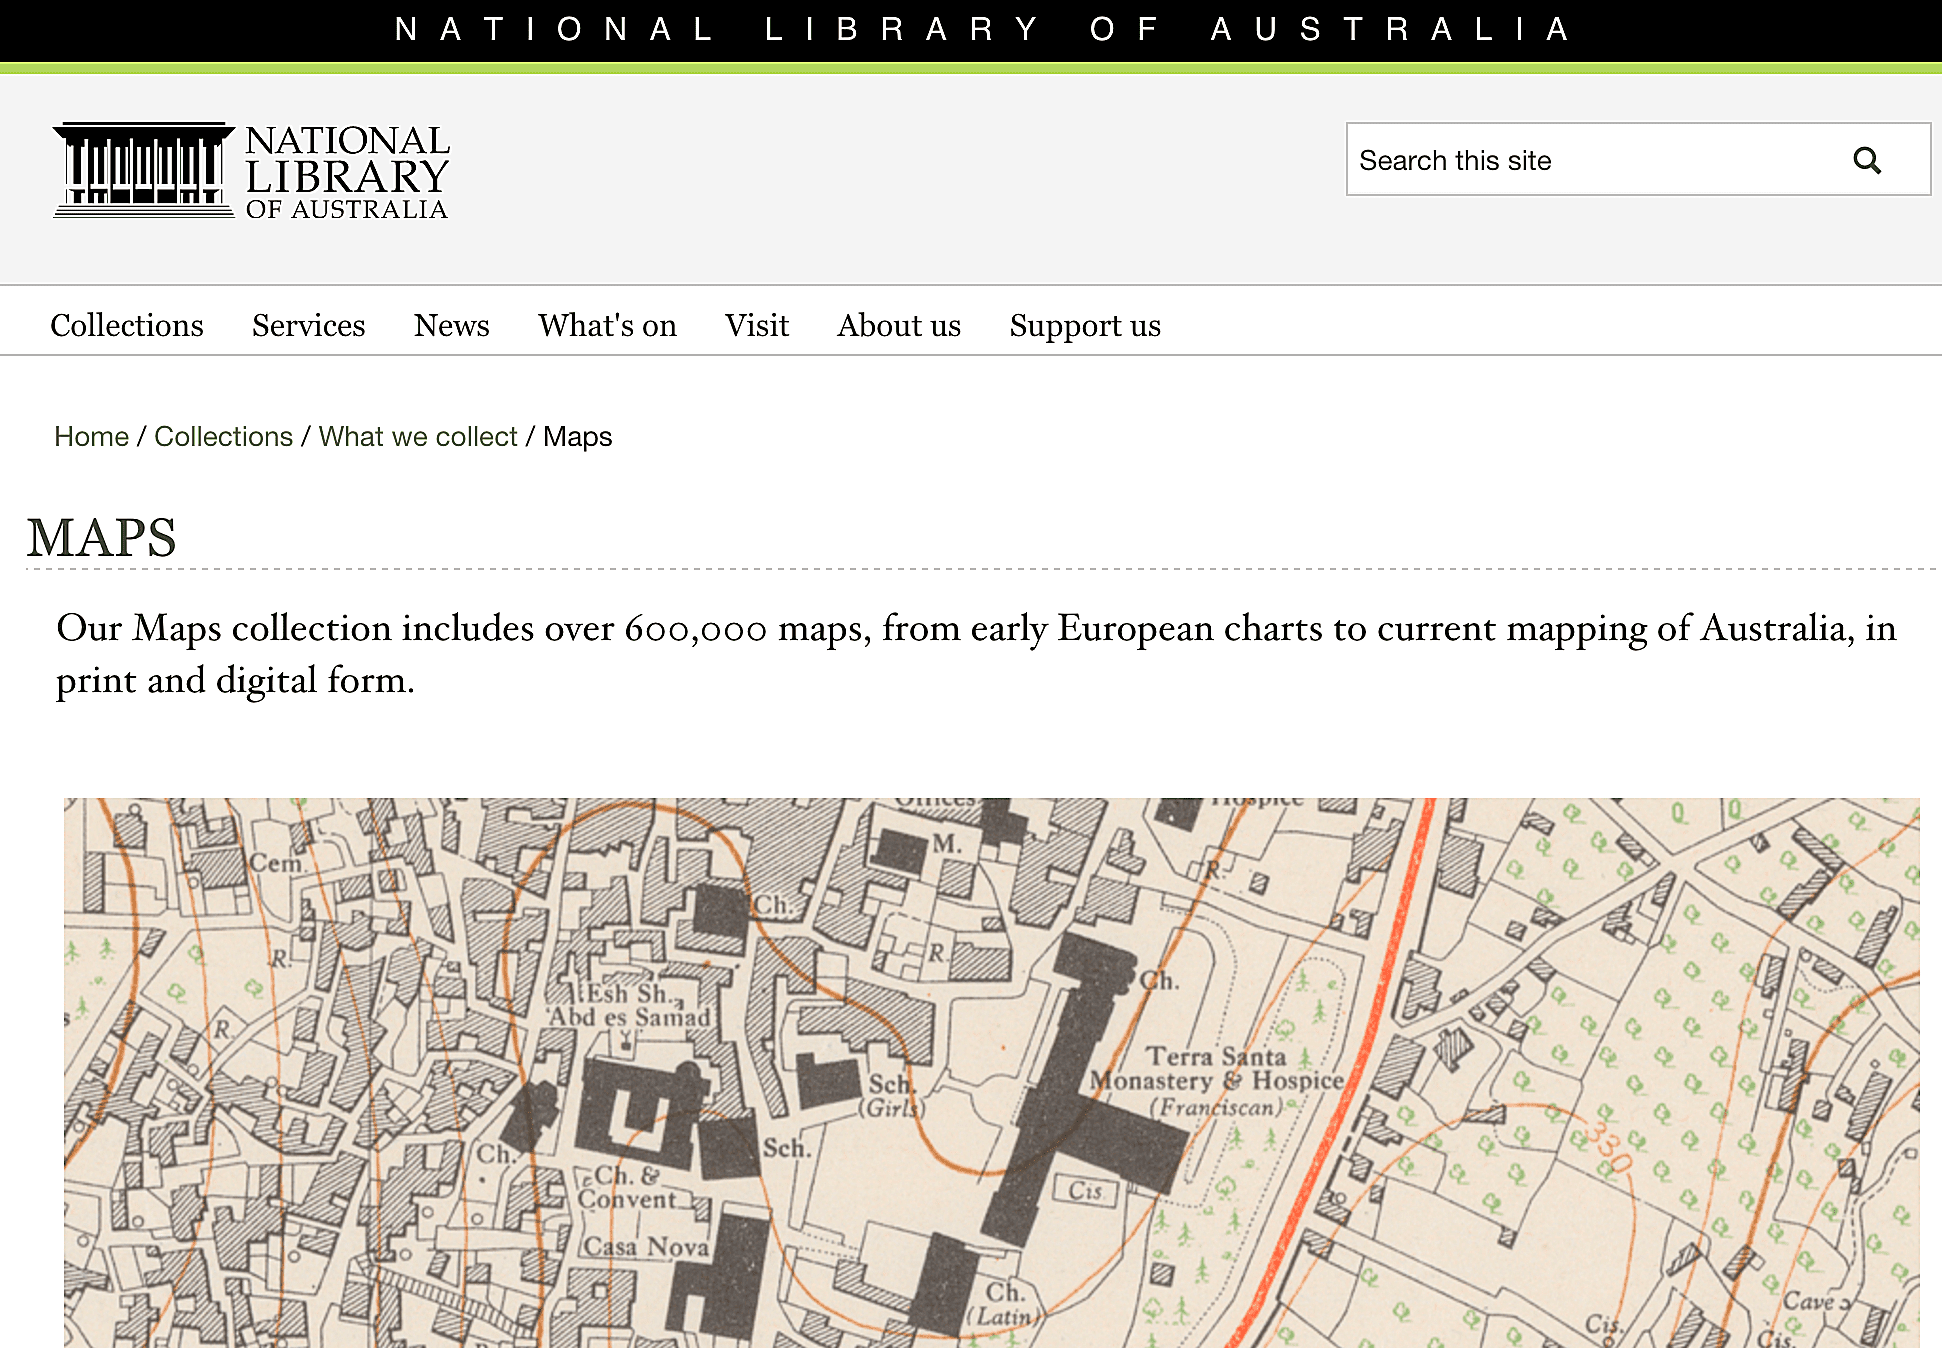 Explore selected maps from the 600,000+ map collections of the National Library of Australia.